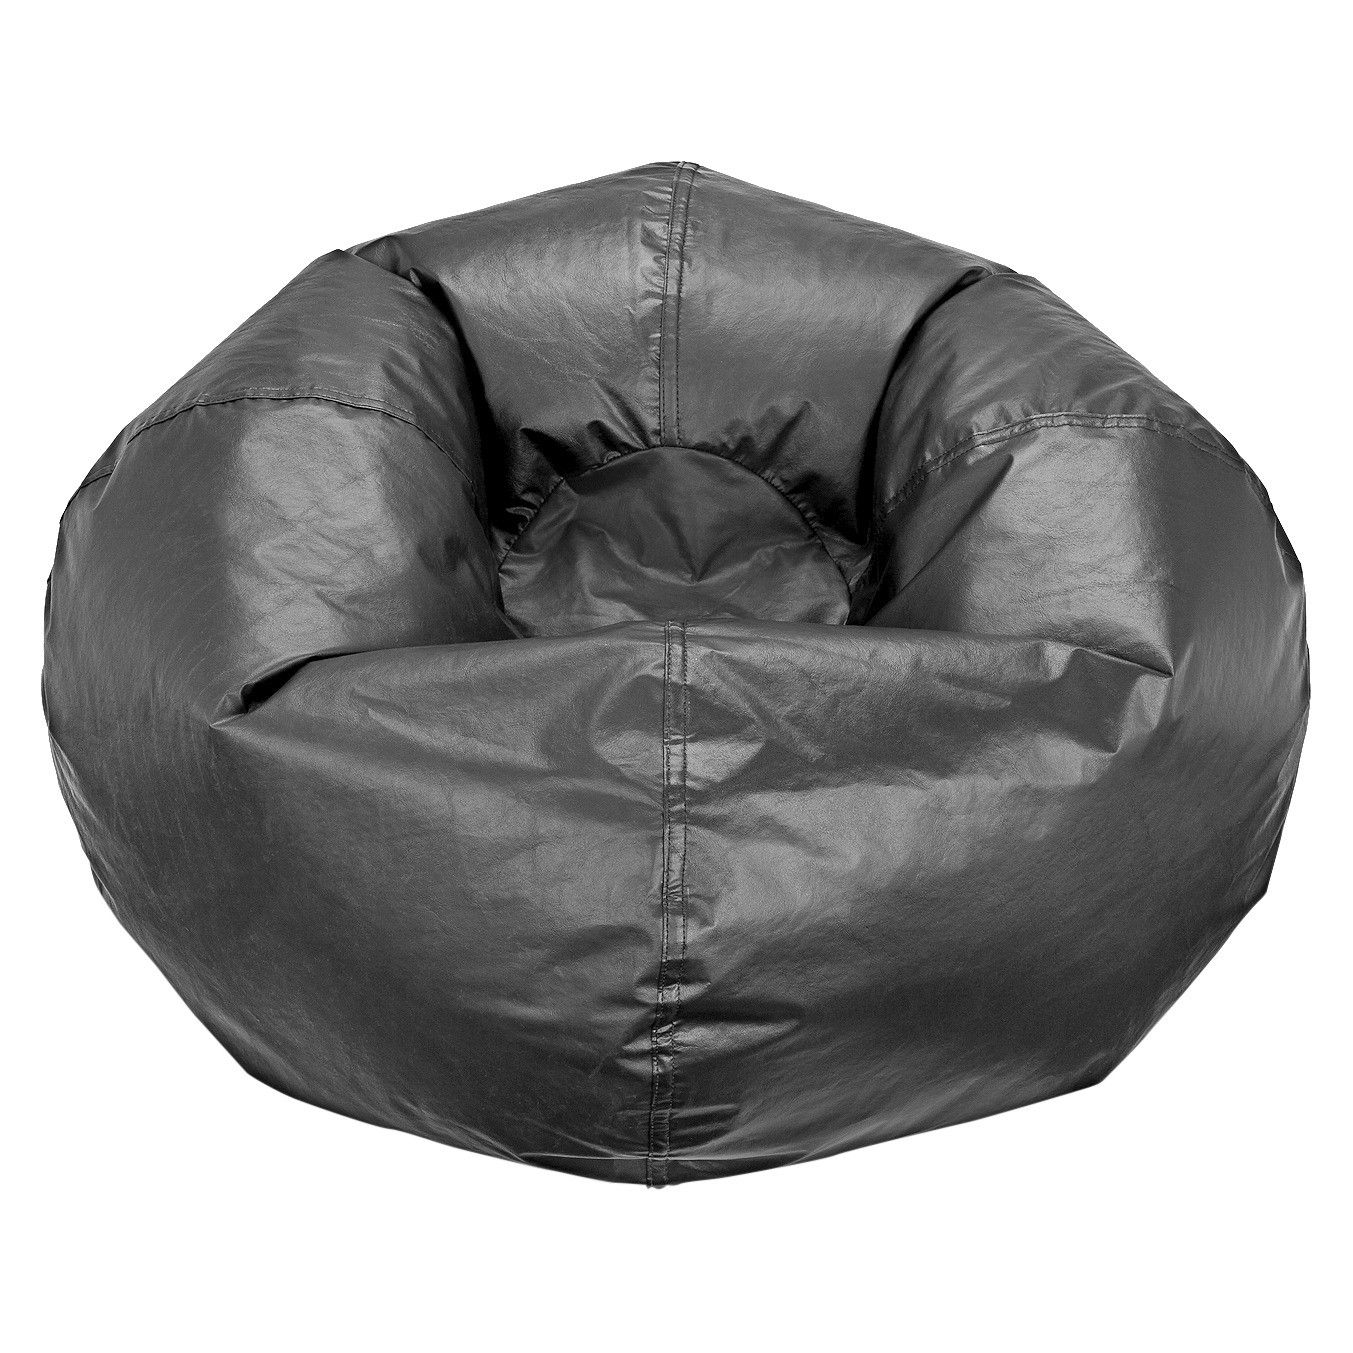 Ace Bayou Bean Bag Chair   Matte Black : Target $37.99 Bigger Than Other  One 32x30x13